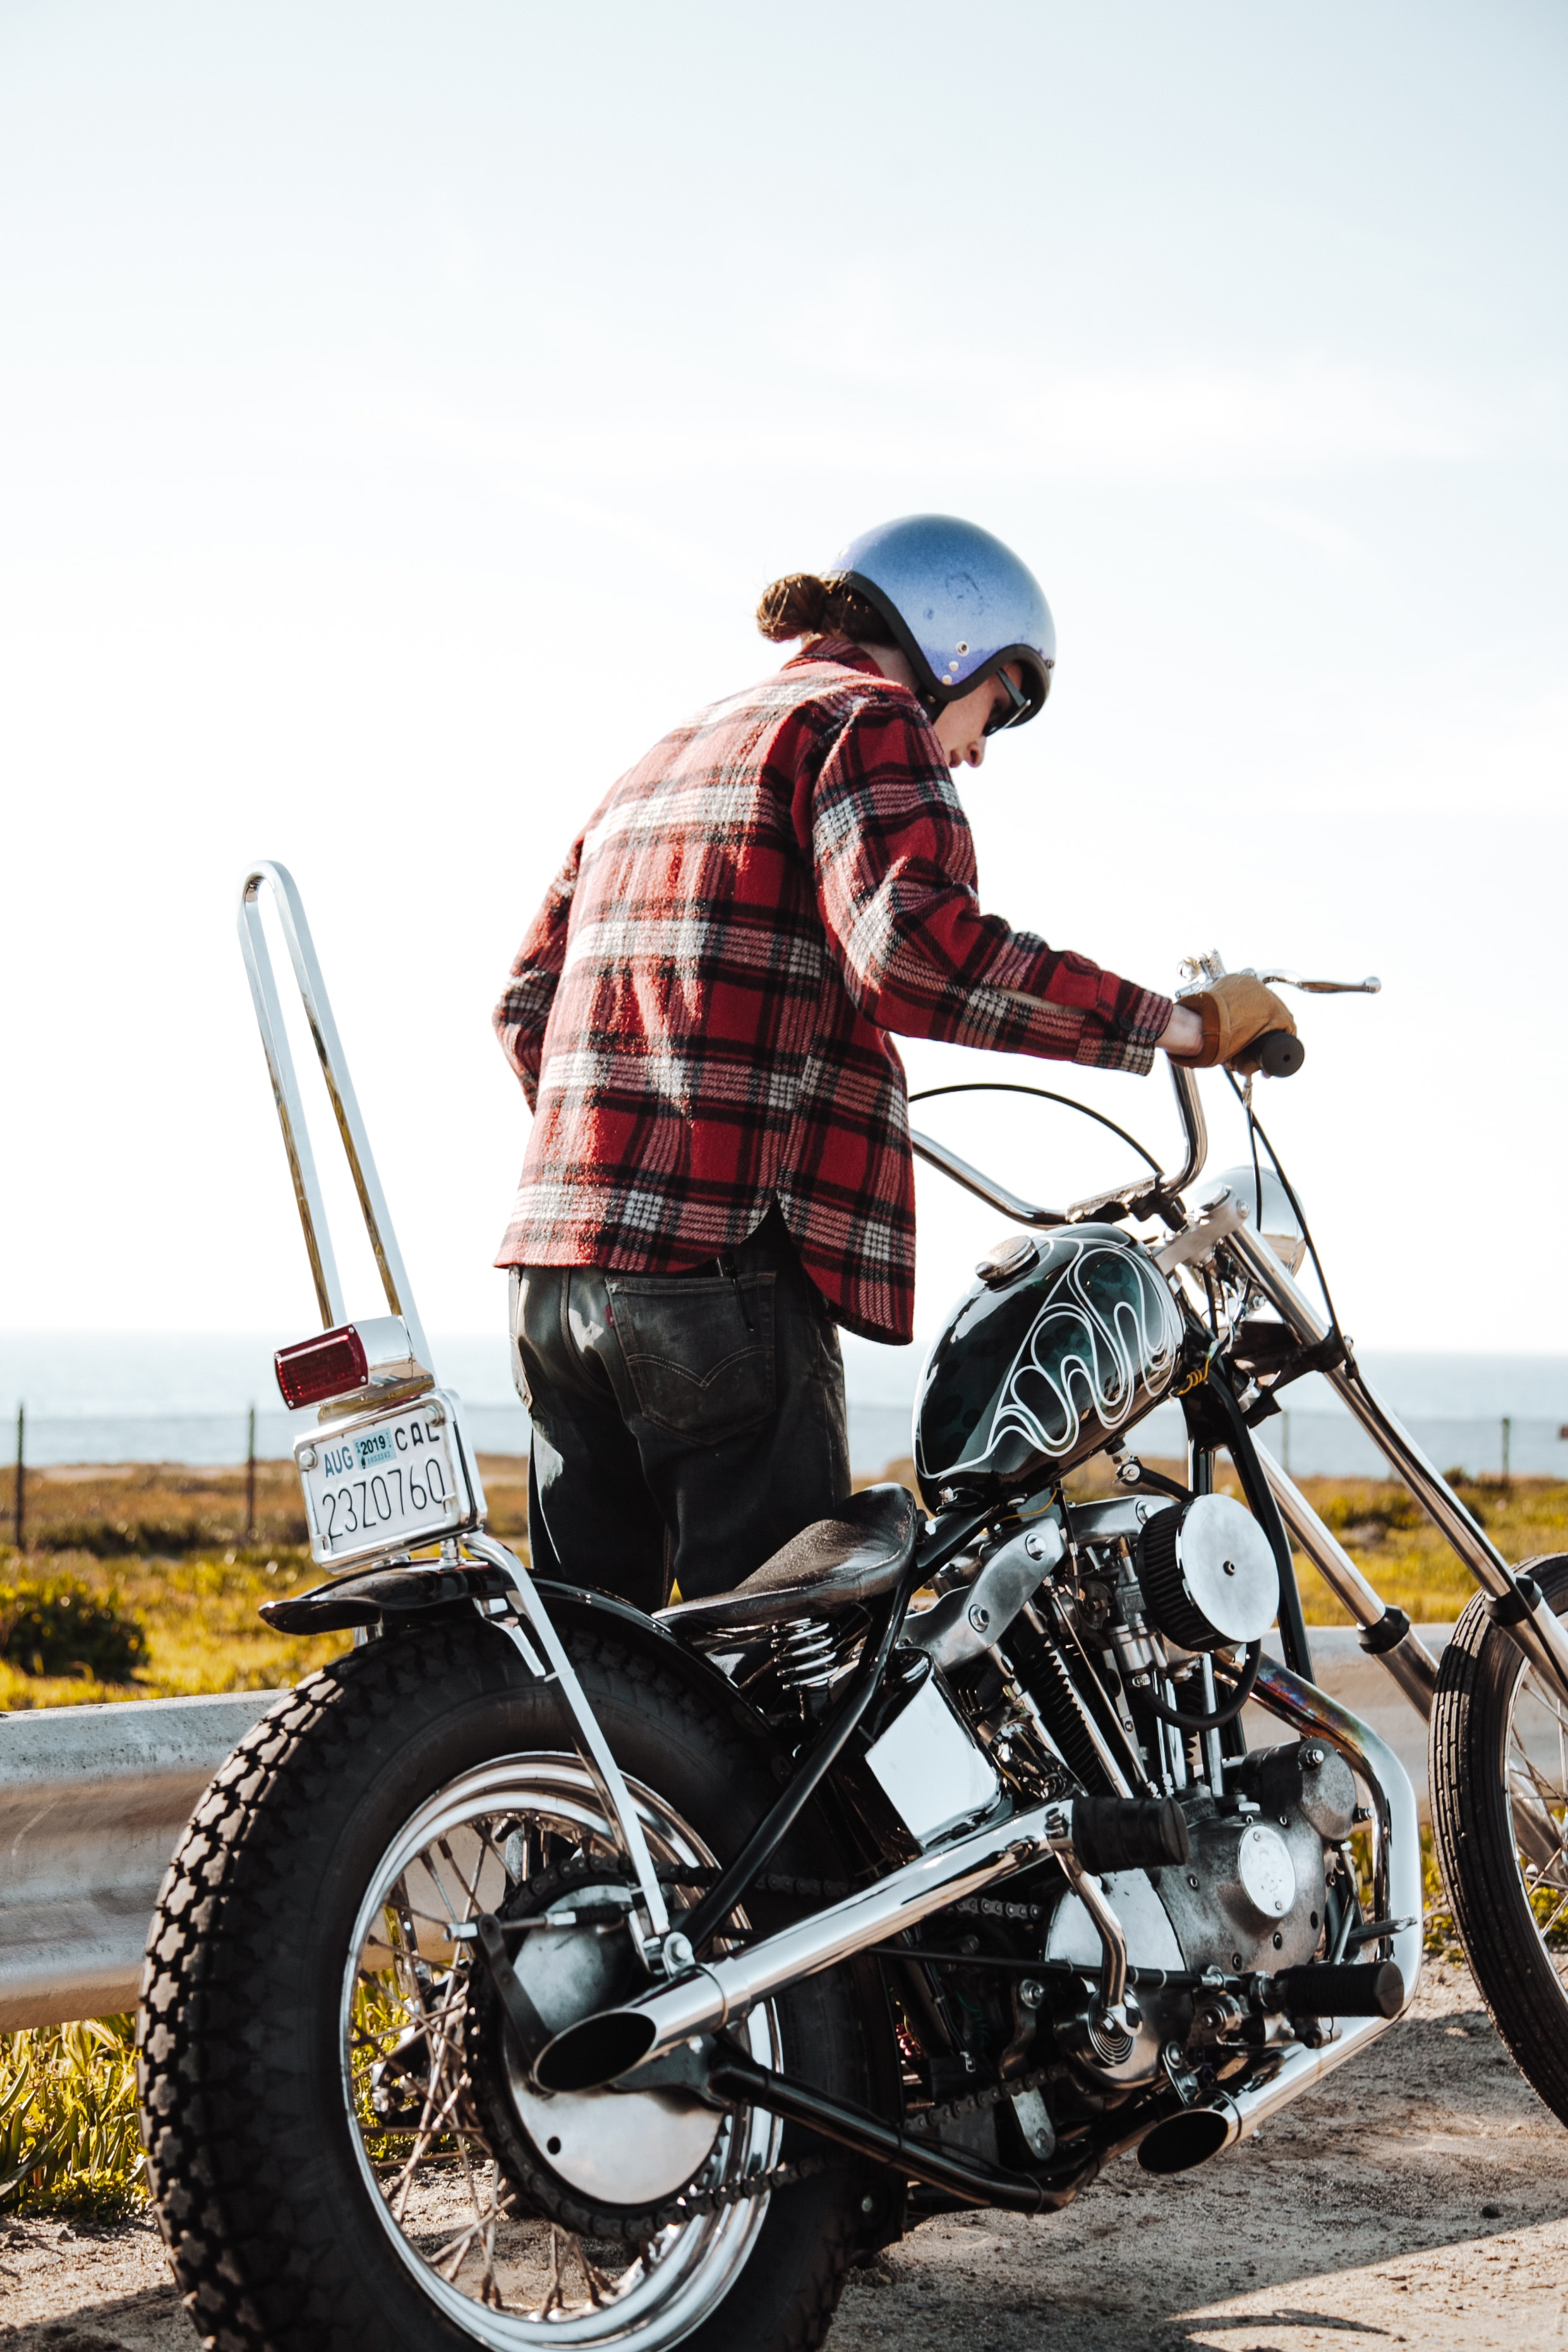 man about to ride chopper motorcycle